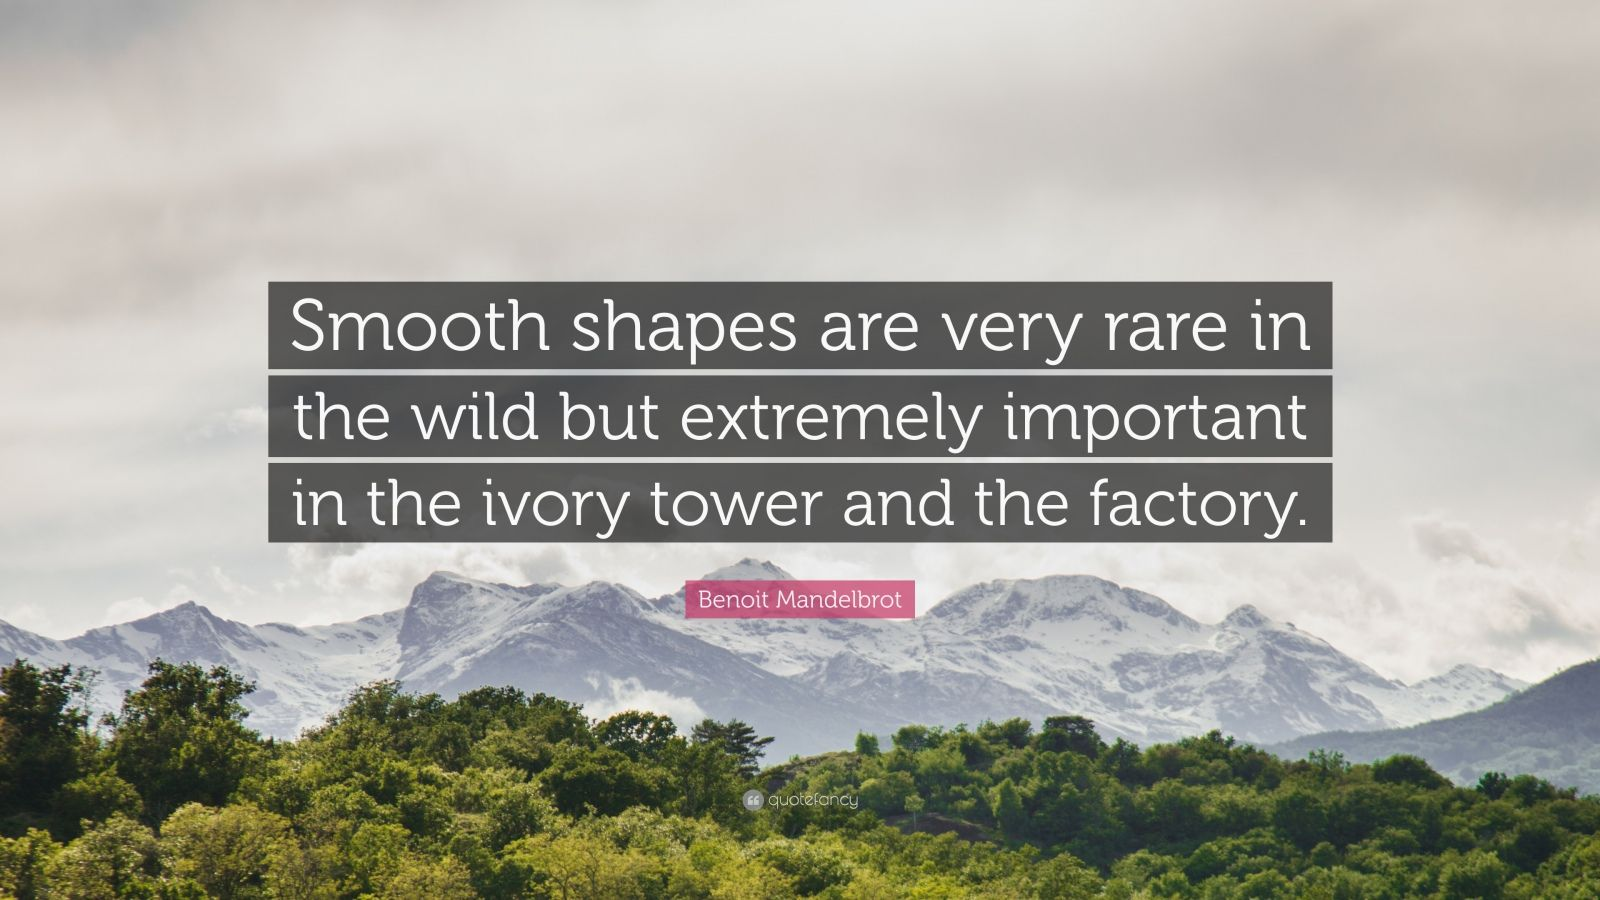 """Benoit Mandelbrot Quote: """"Smooth shapes are very rare in the wild but extremely important in the ivory tower and the factory."""""""